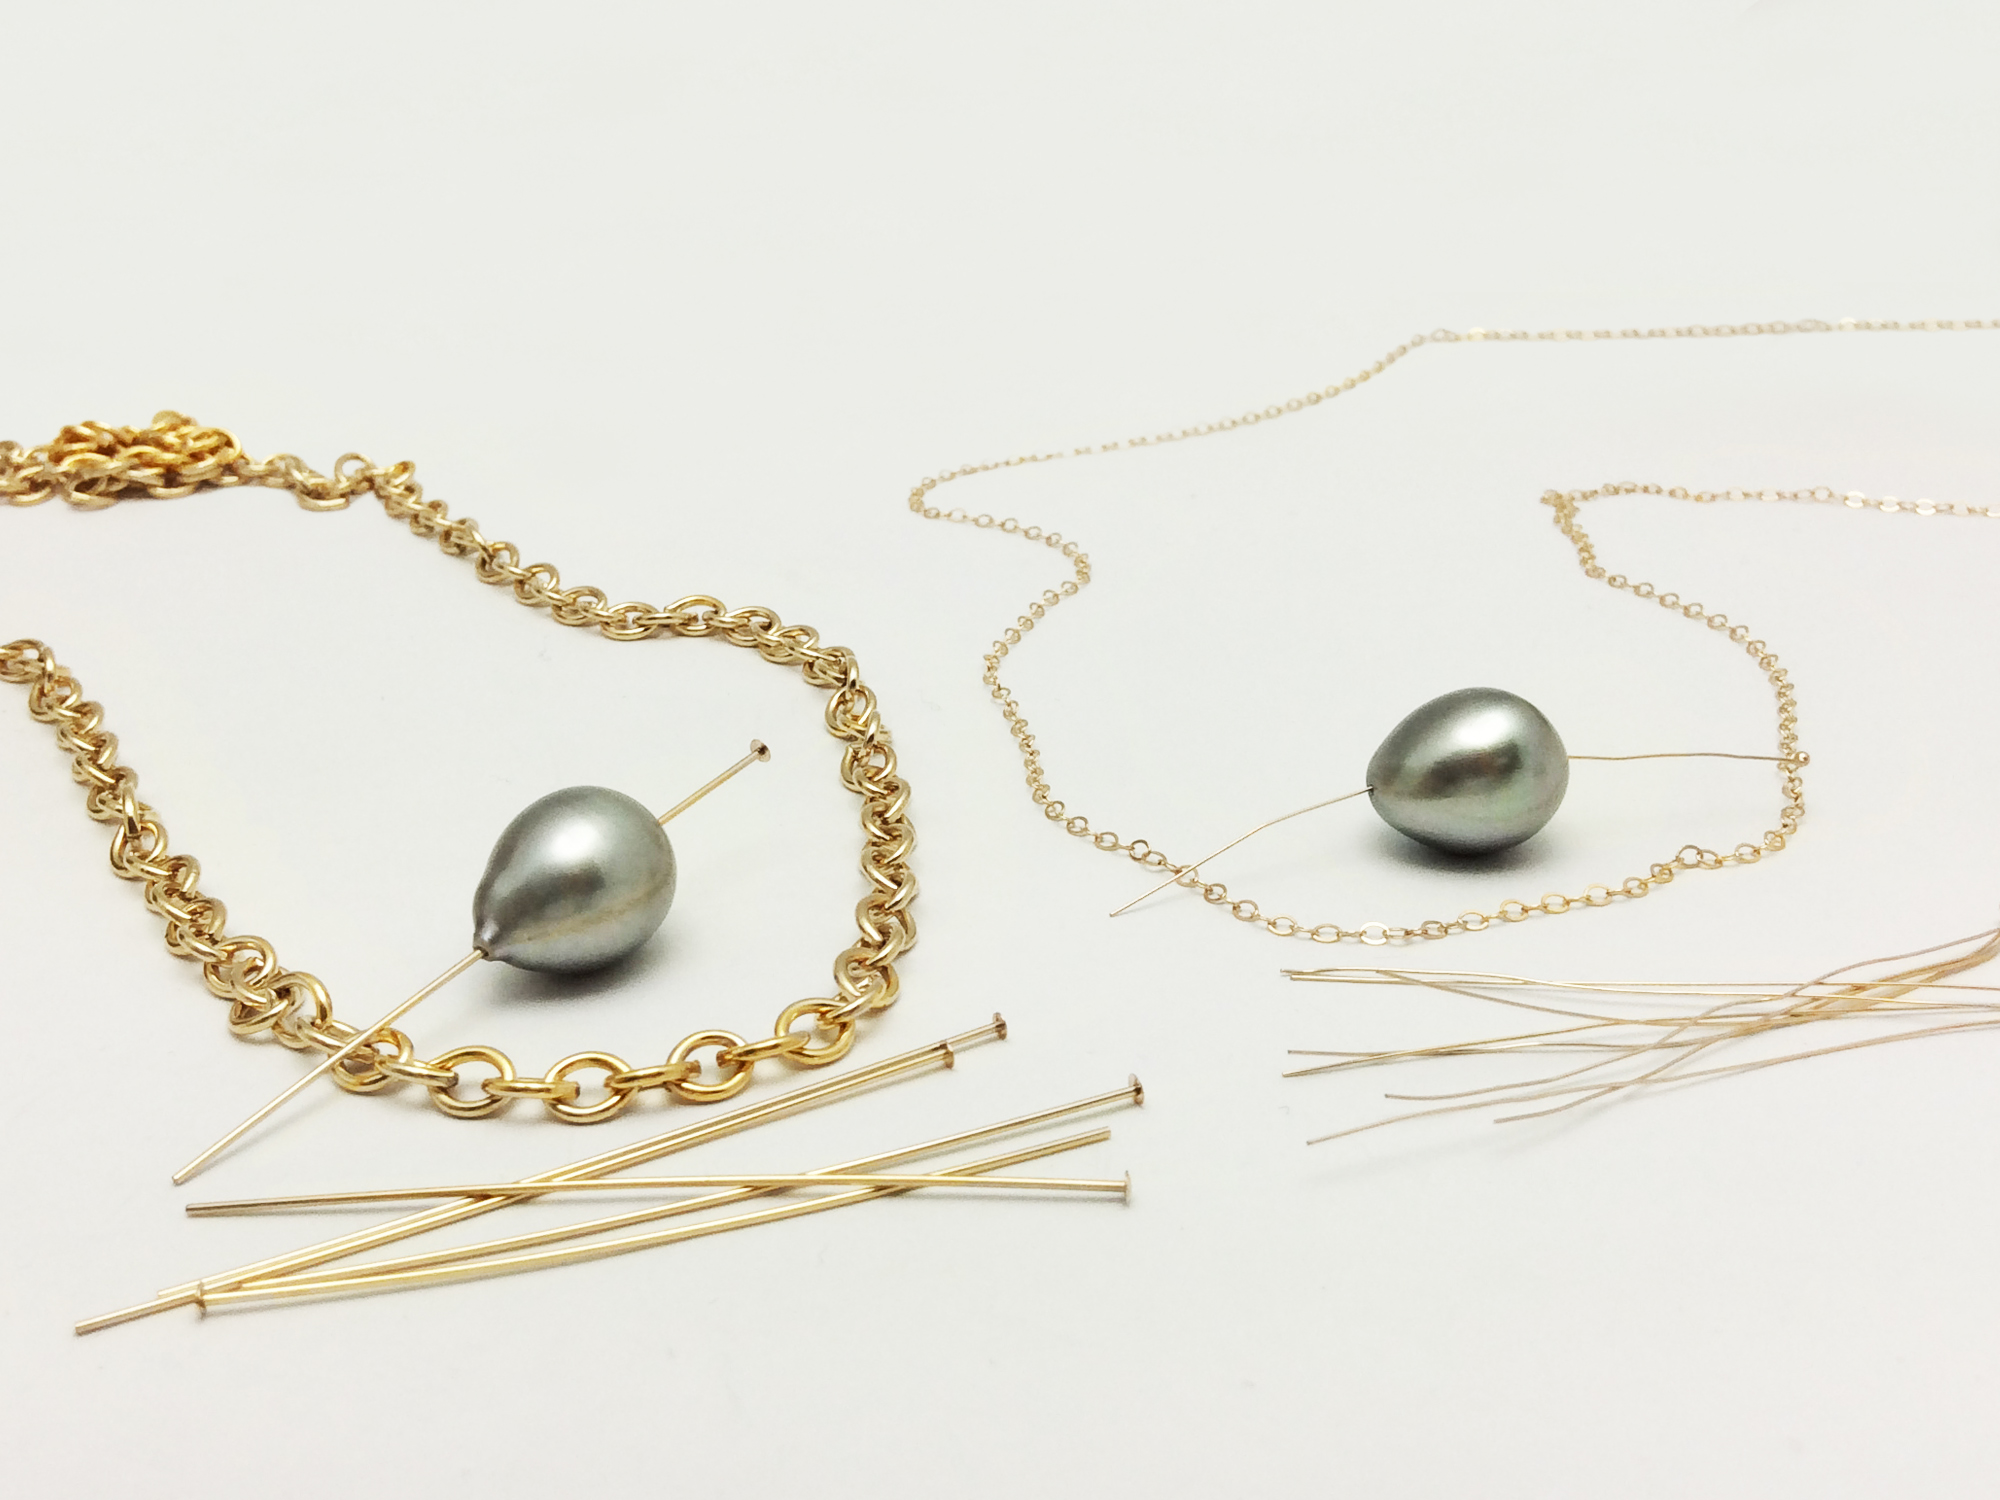 How To Wire Wrap Matching Pendants And Earrings With Headpins And